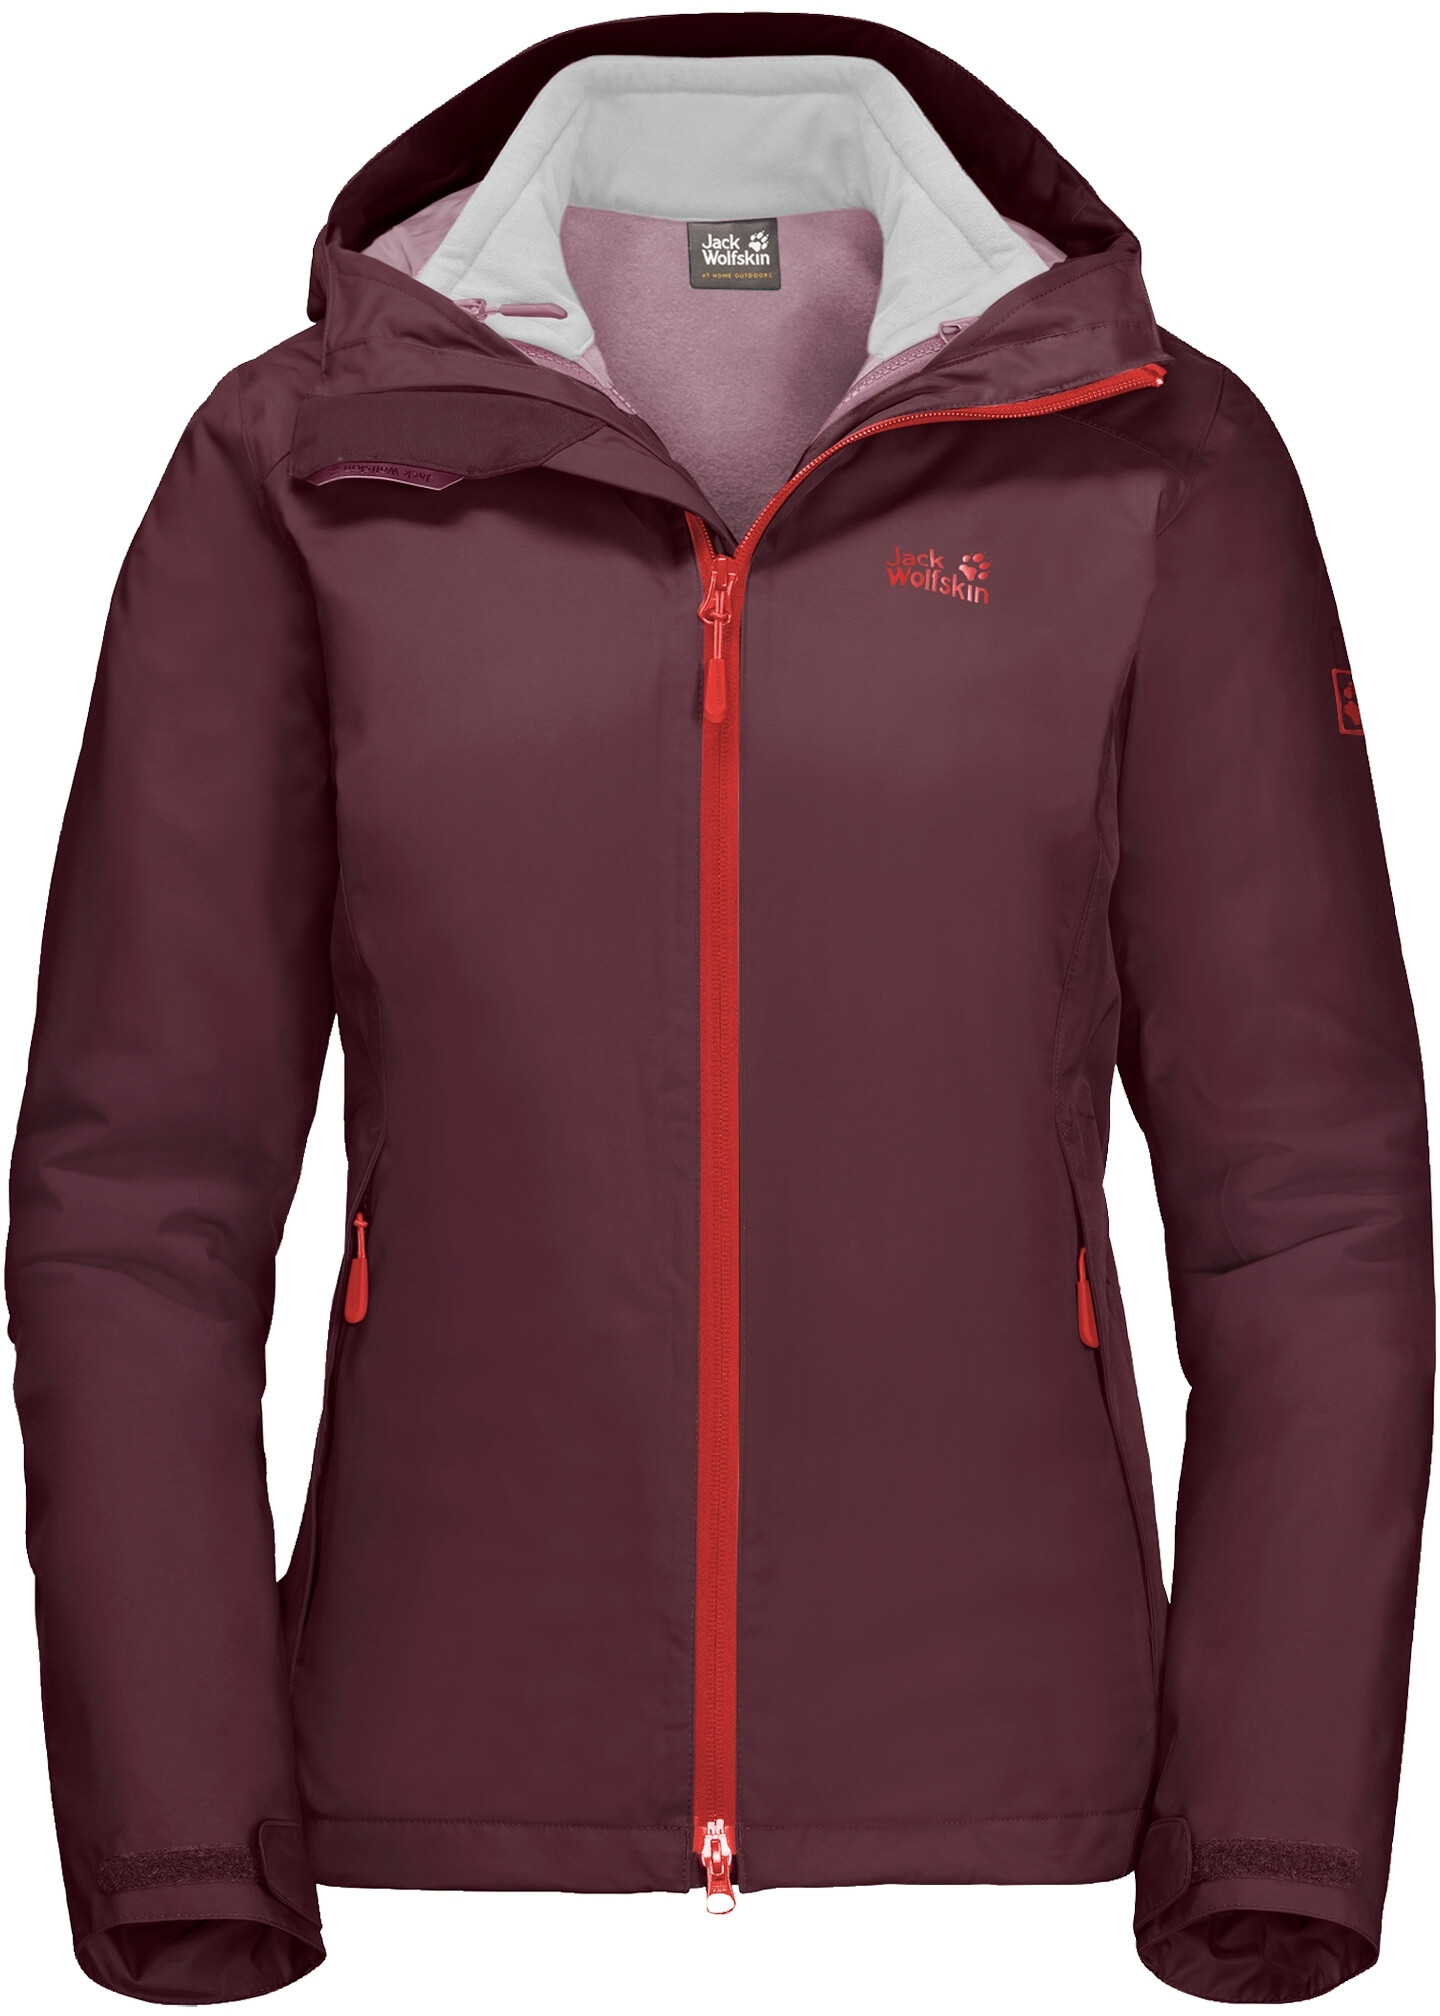 jack wolfskin gotland 3in1 doppeljacke damen fall red